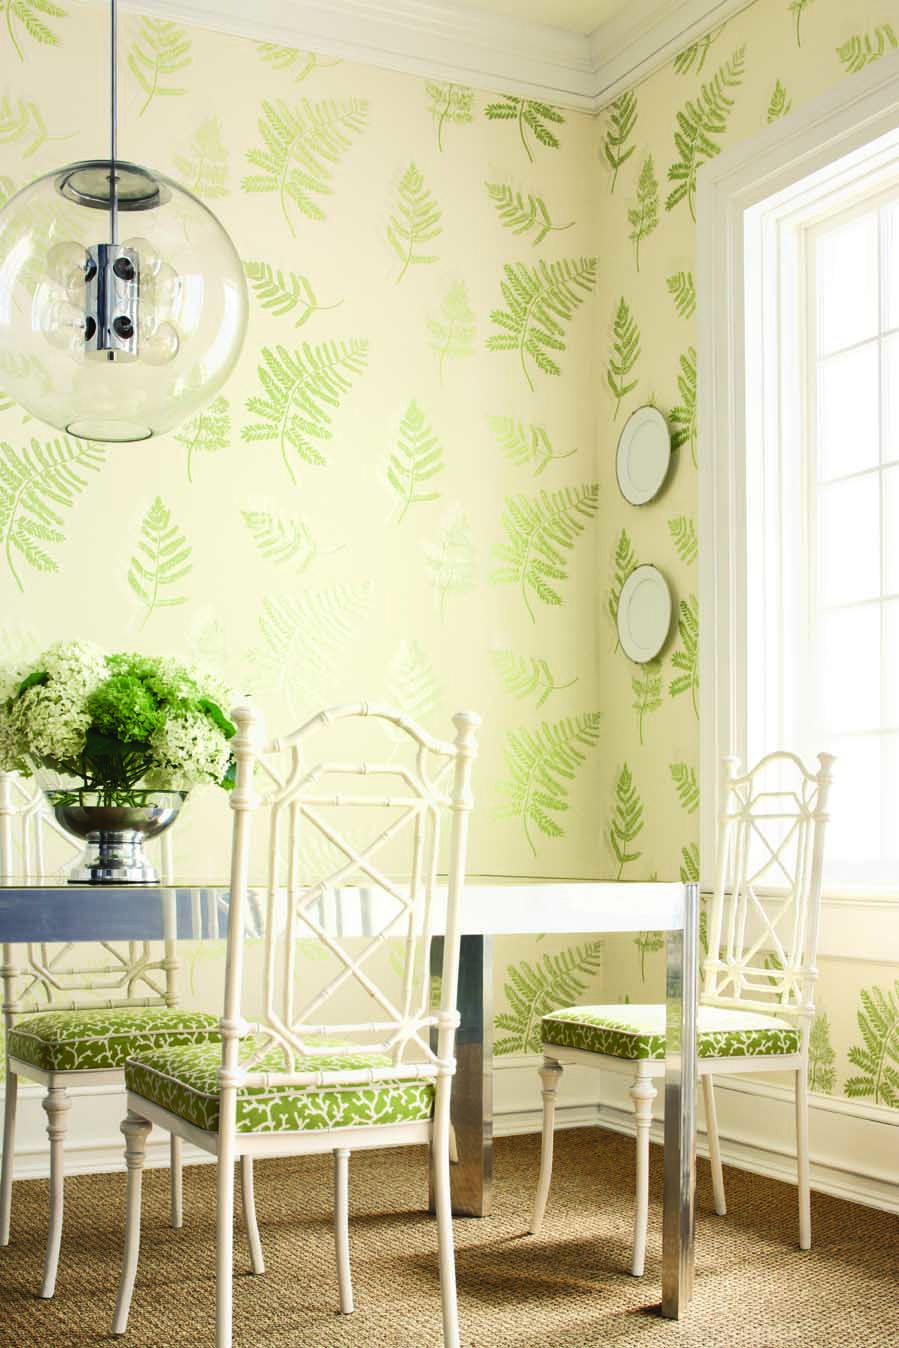 Fougere Wallpaper In Green Pearl On Cream From The